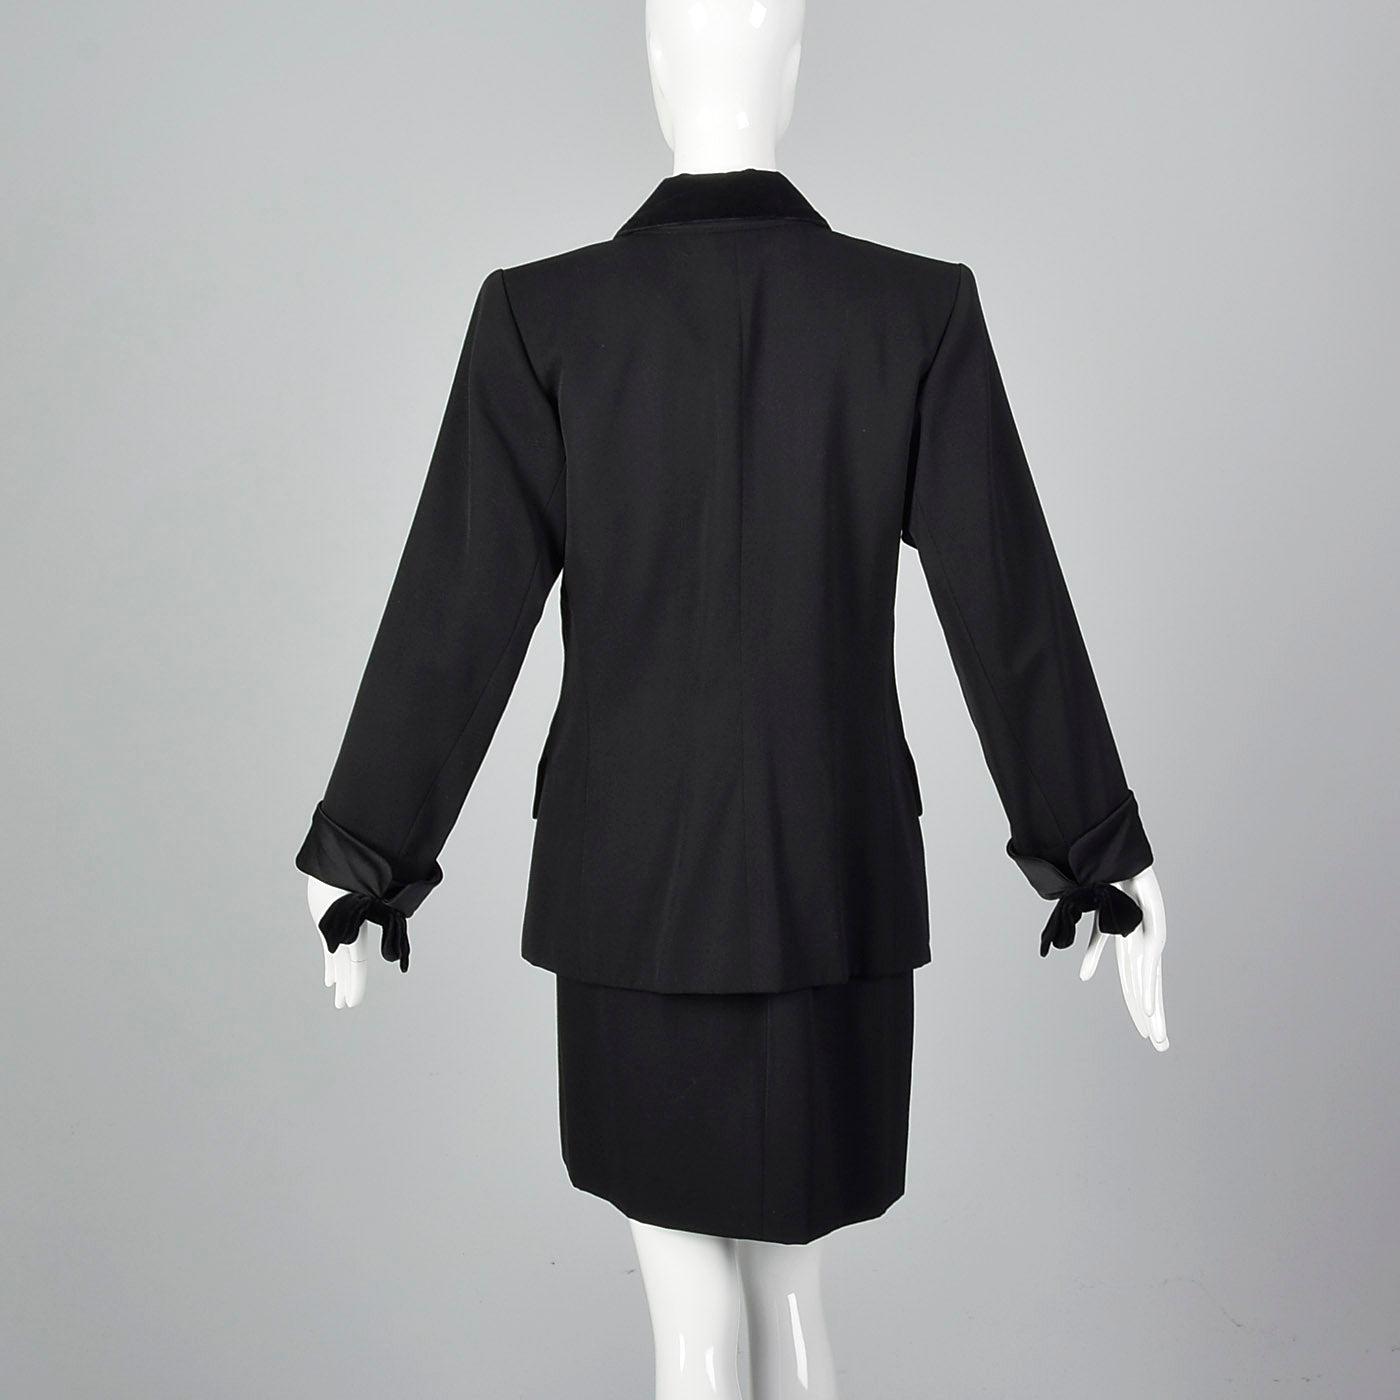 Yves Saint Laurent Rive Gauche Black Skirt Suit with Velvet Trim